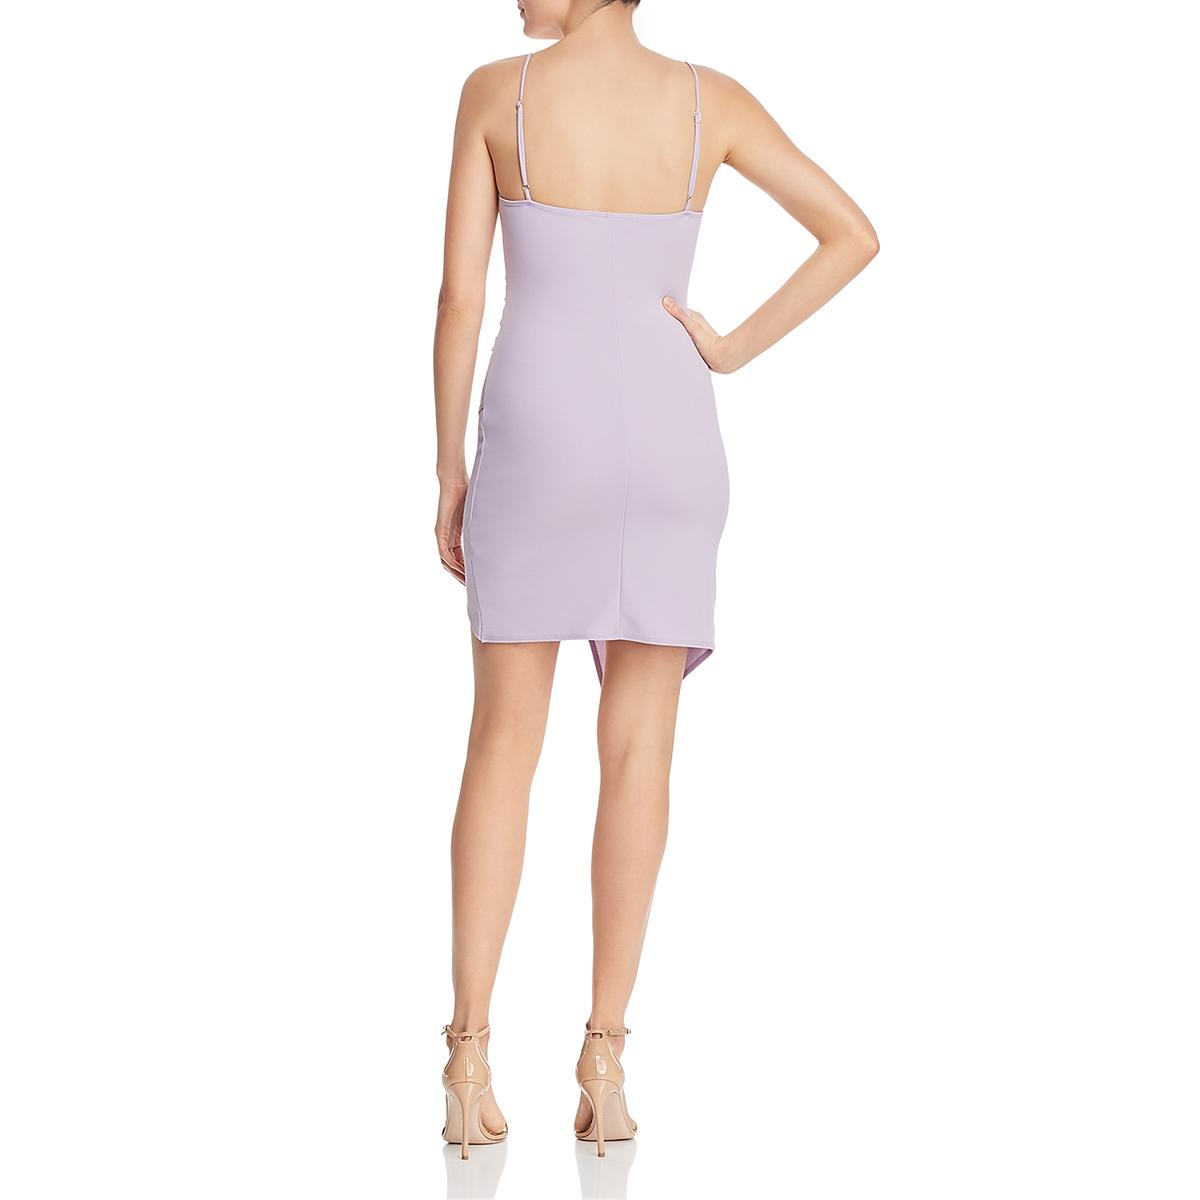 Sunset /& Spring Womens Faux Wrap Ruched Party Cocktail Dress BHFO 0659